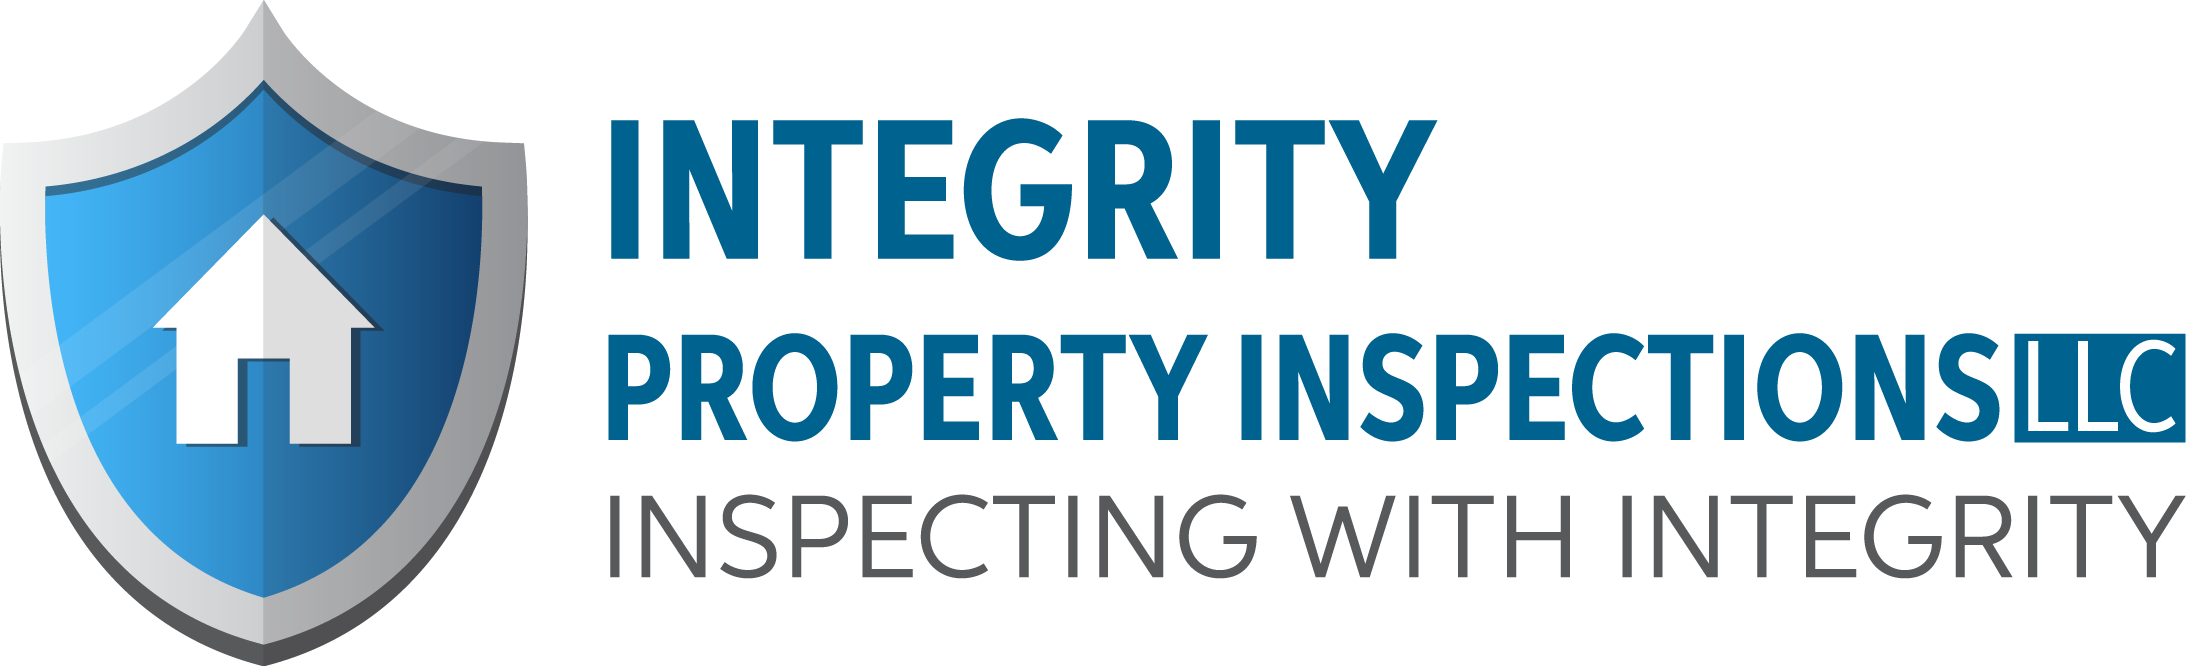 Integrity Property Inspections LLC